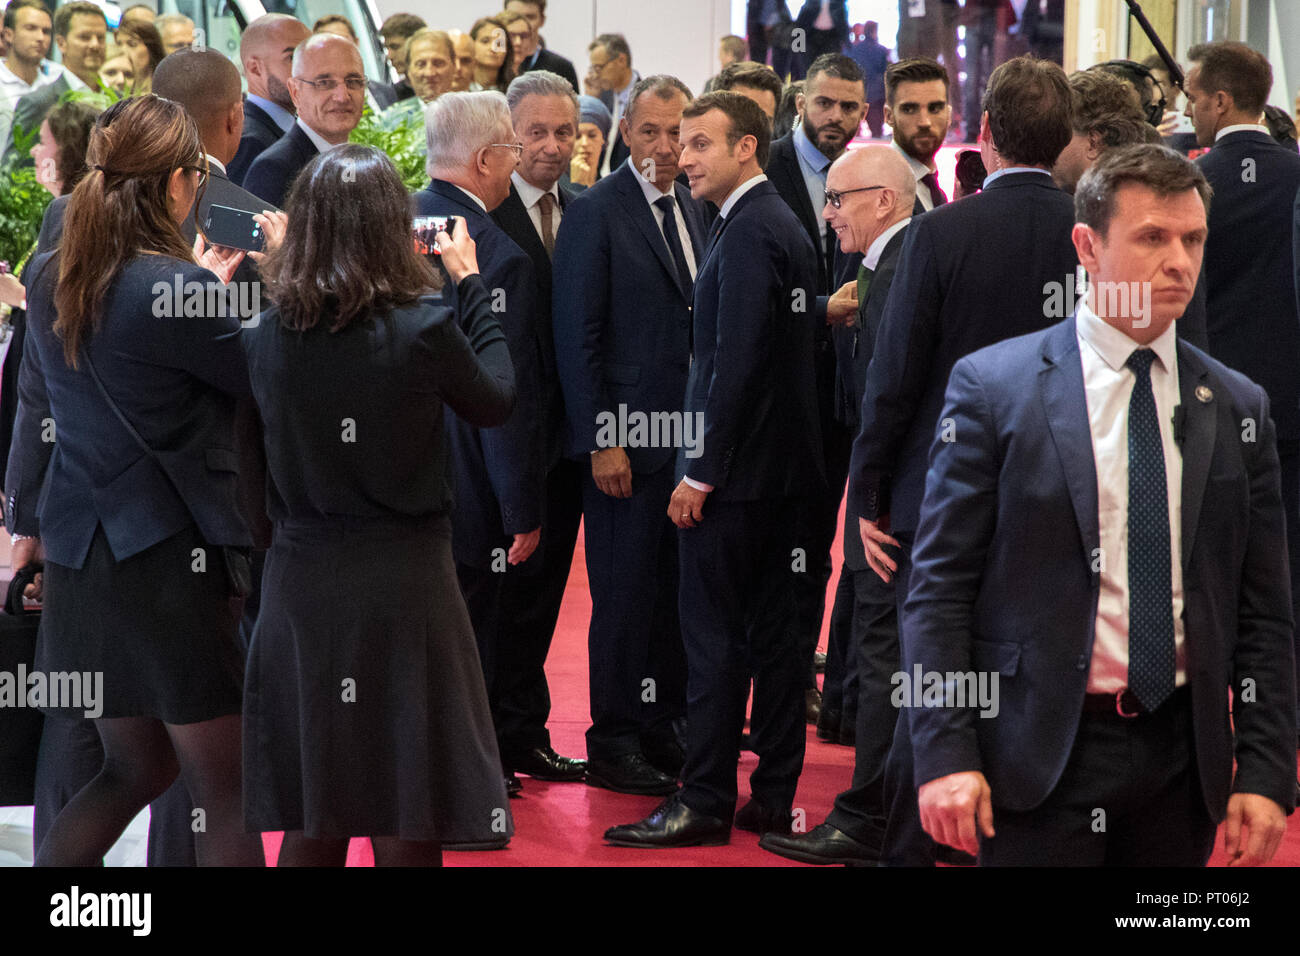 PARIS - OCT 3, 2018: President of France Emmanuel Macron visiting the Paris Motor Show 2018 edition. - Stock Image